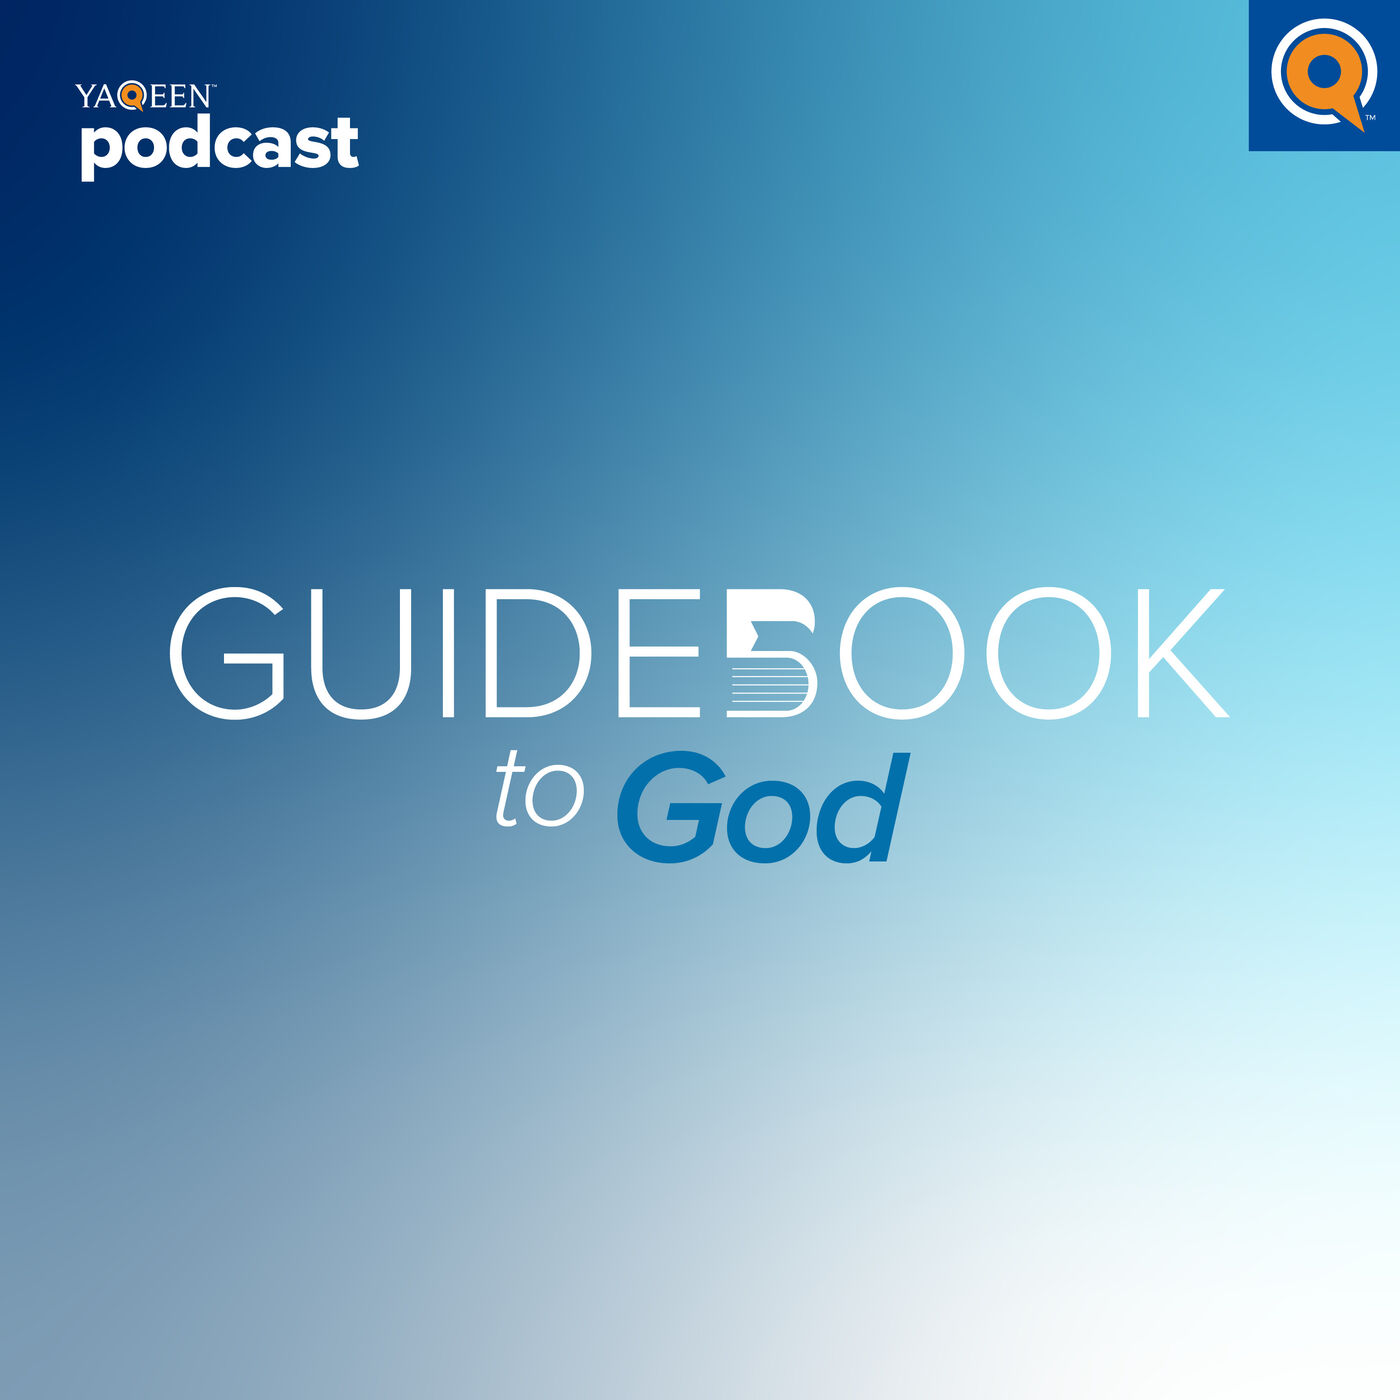 Ep 26 - Prioritizing Privacy with Allah | Guidebook to God